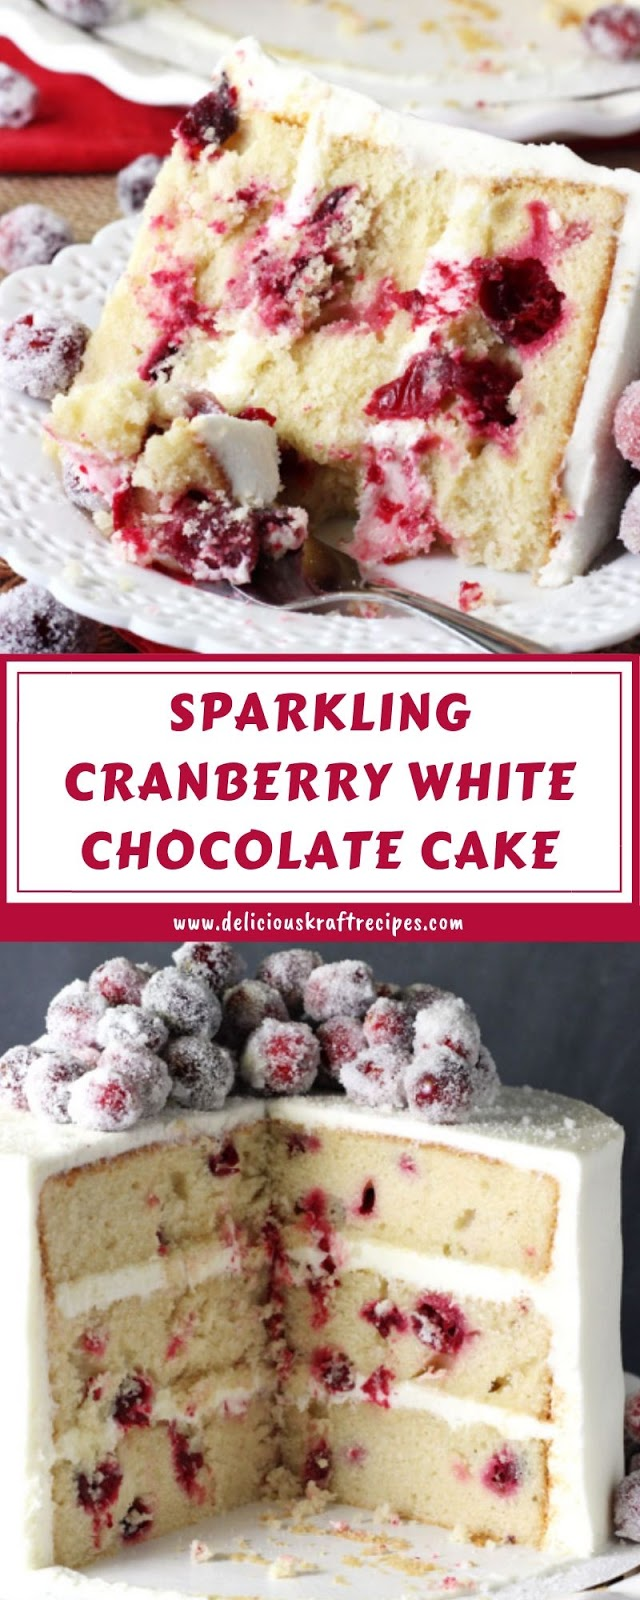 SPARKLING CRANBERRY WHITE CHOCOLATE CAKE